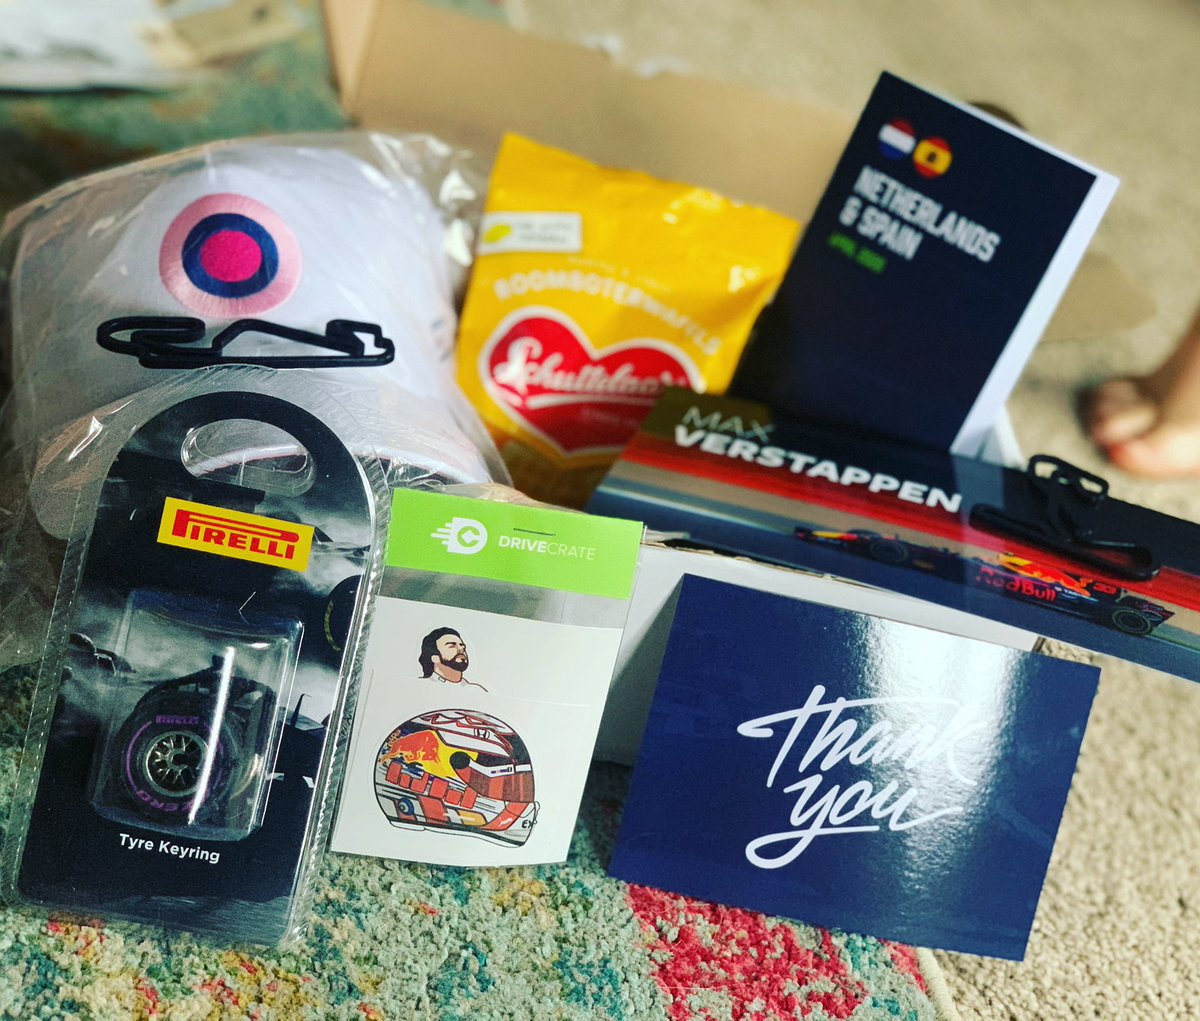 GetDriveCrate subscription box for sports fan